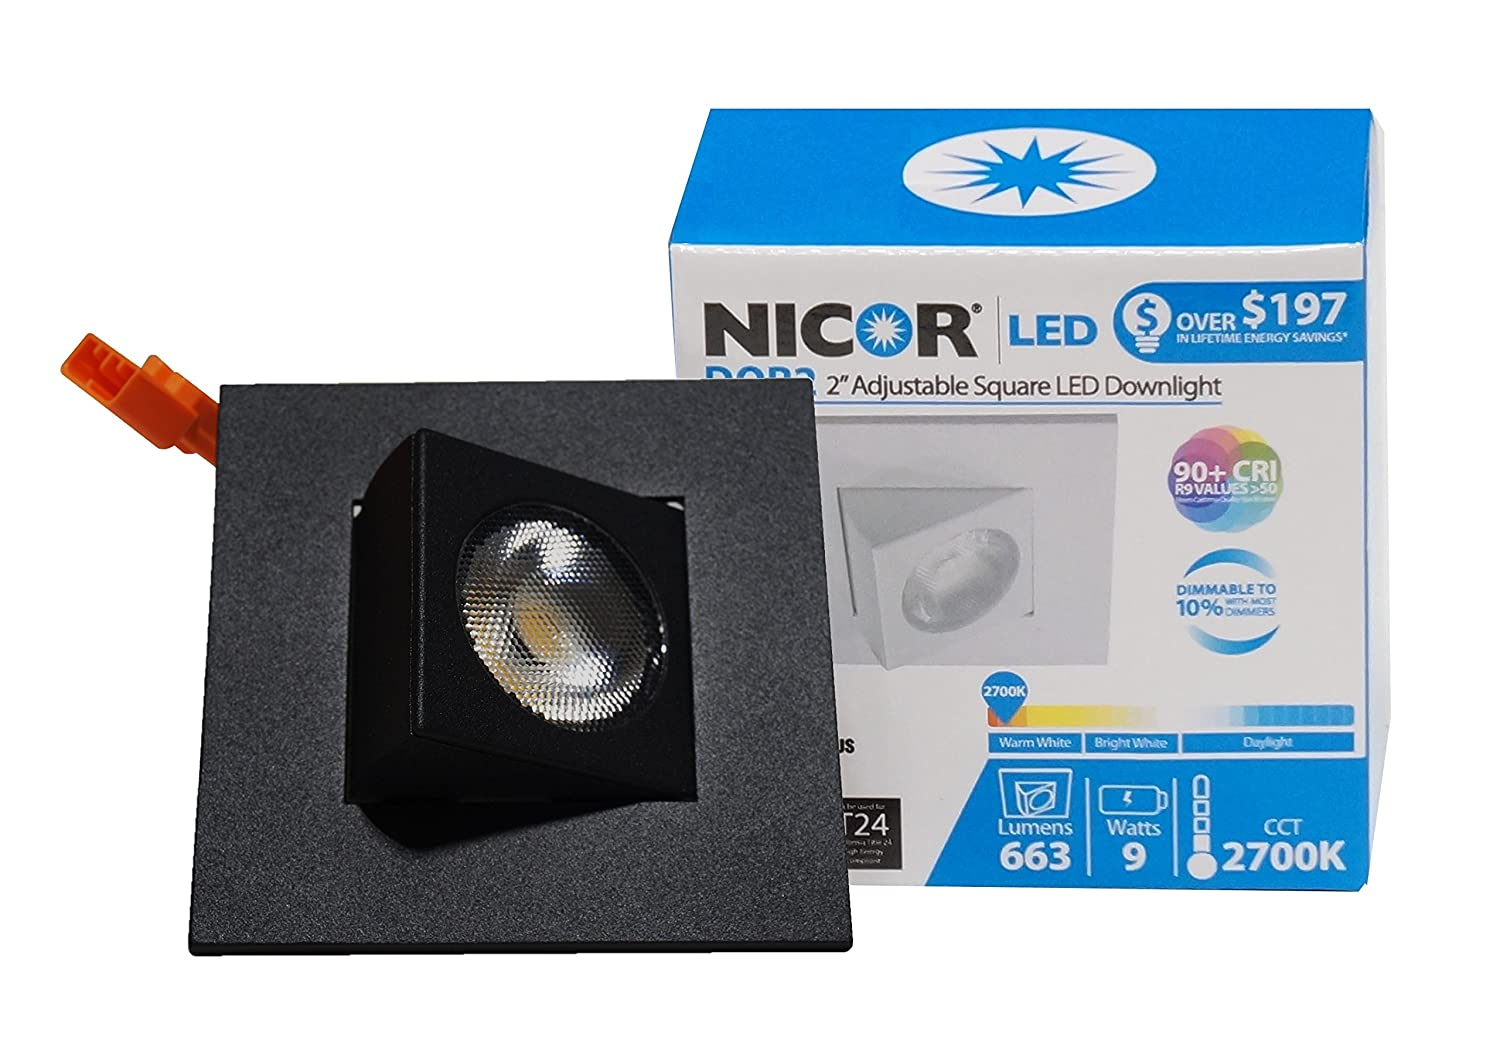 DQR2-AA-10-120-3K-OB NICOR Lighting 2-Inch Adjustable Square Eyeball 3000K LED Downlight Fixture for 2-Inch Recessed Housings Oil-Rubbed Bronze